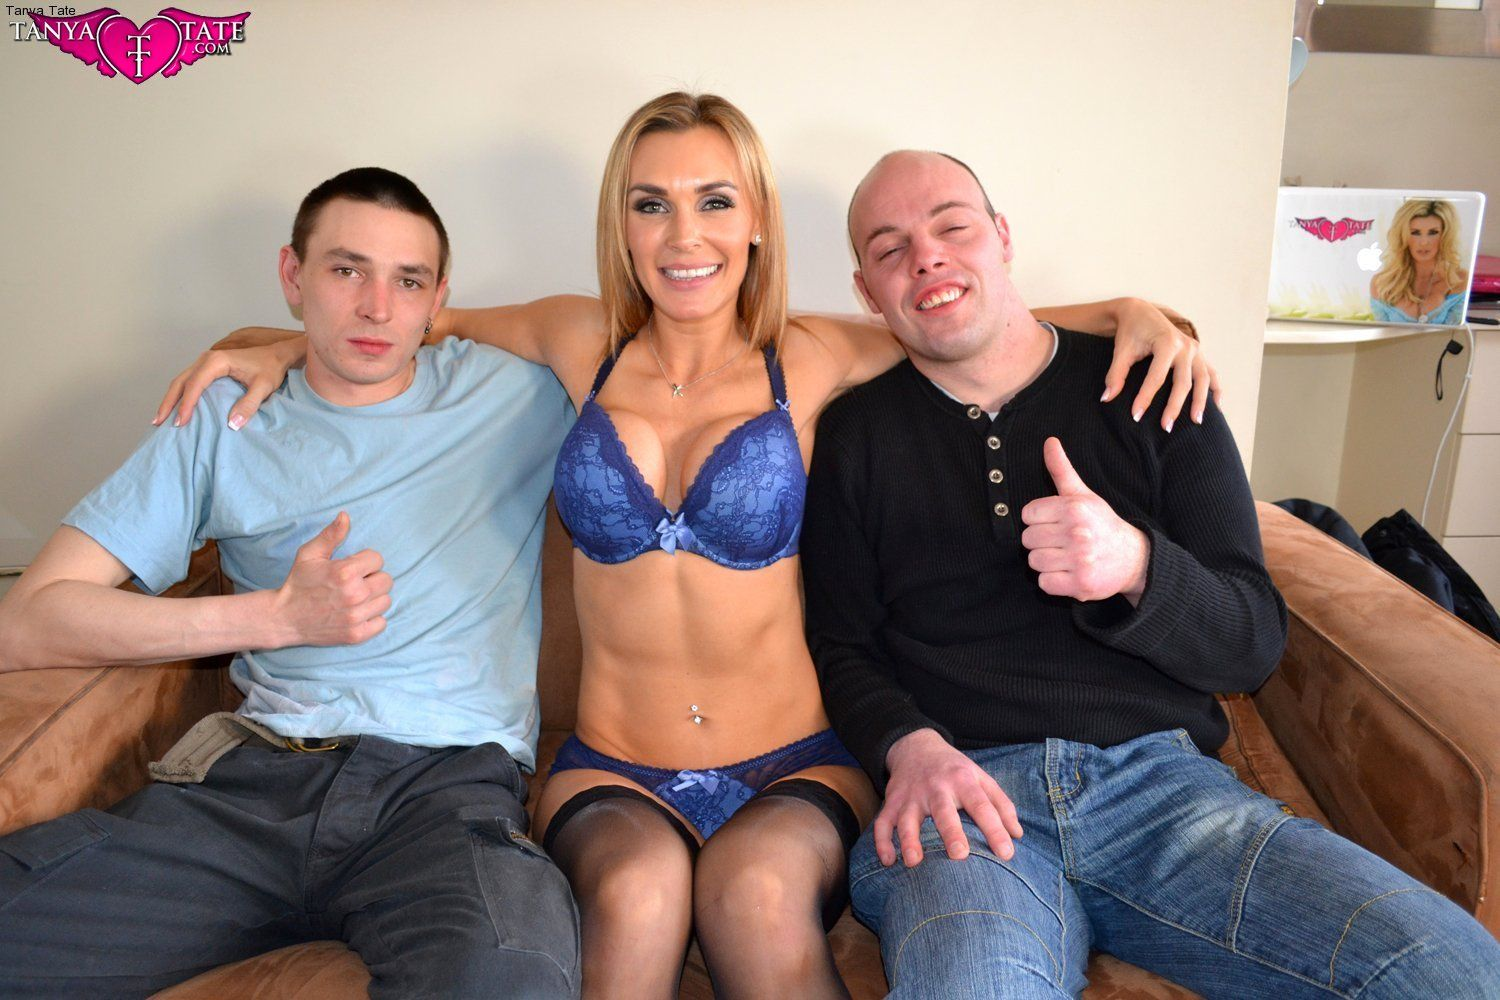 Think, that Tanya tate casting couch